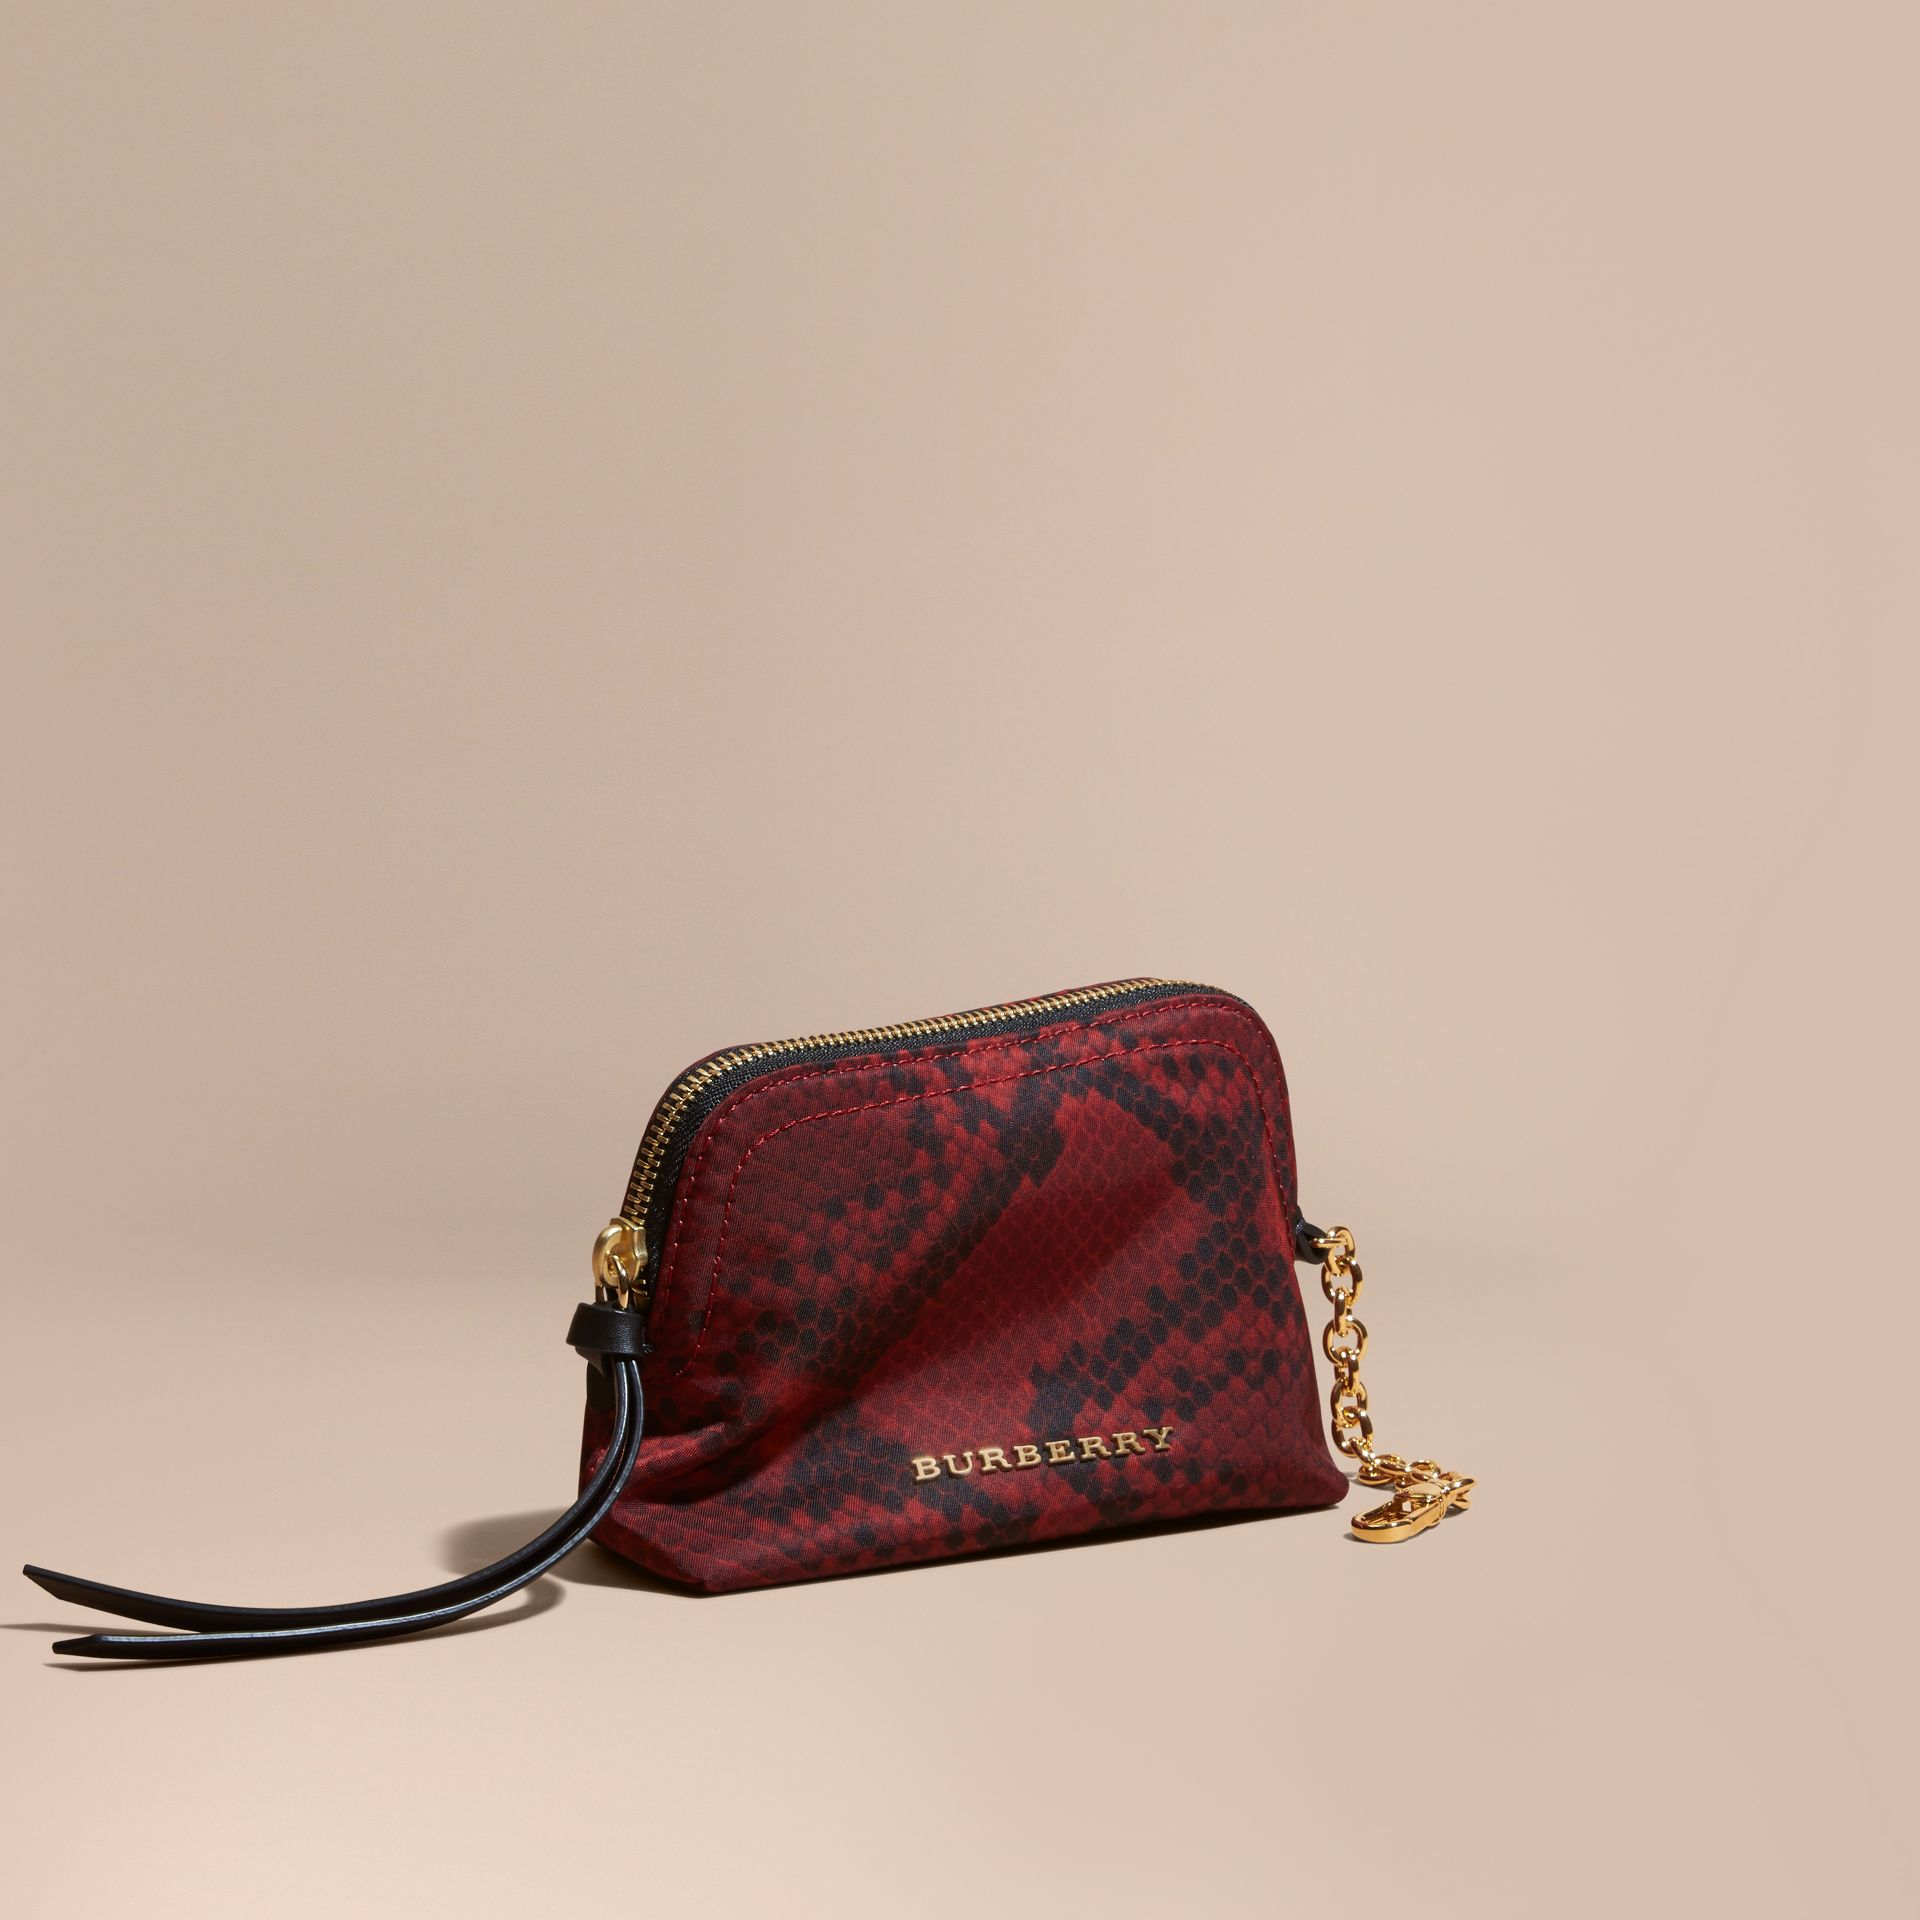 Rouge bourgogne Pochette zippée en nylon technique à imprimé python Rouge Bourgogne - photo de la galerie 1